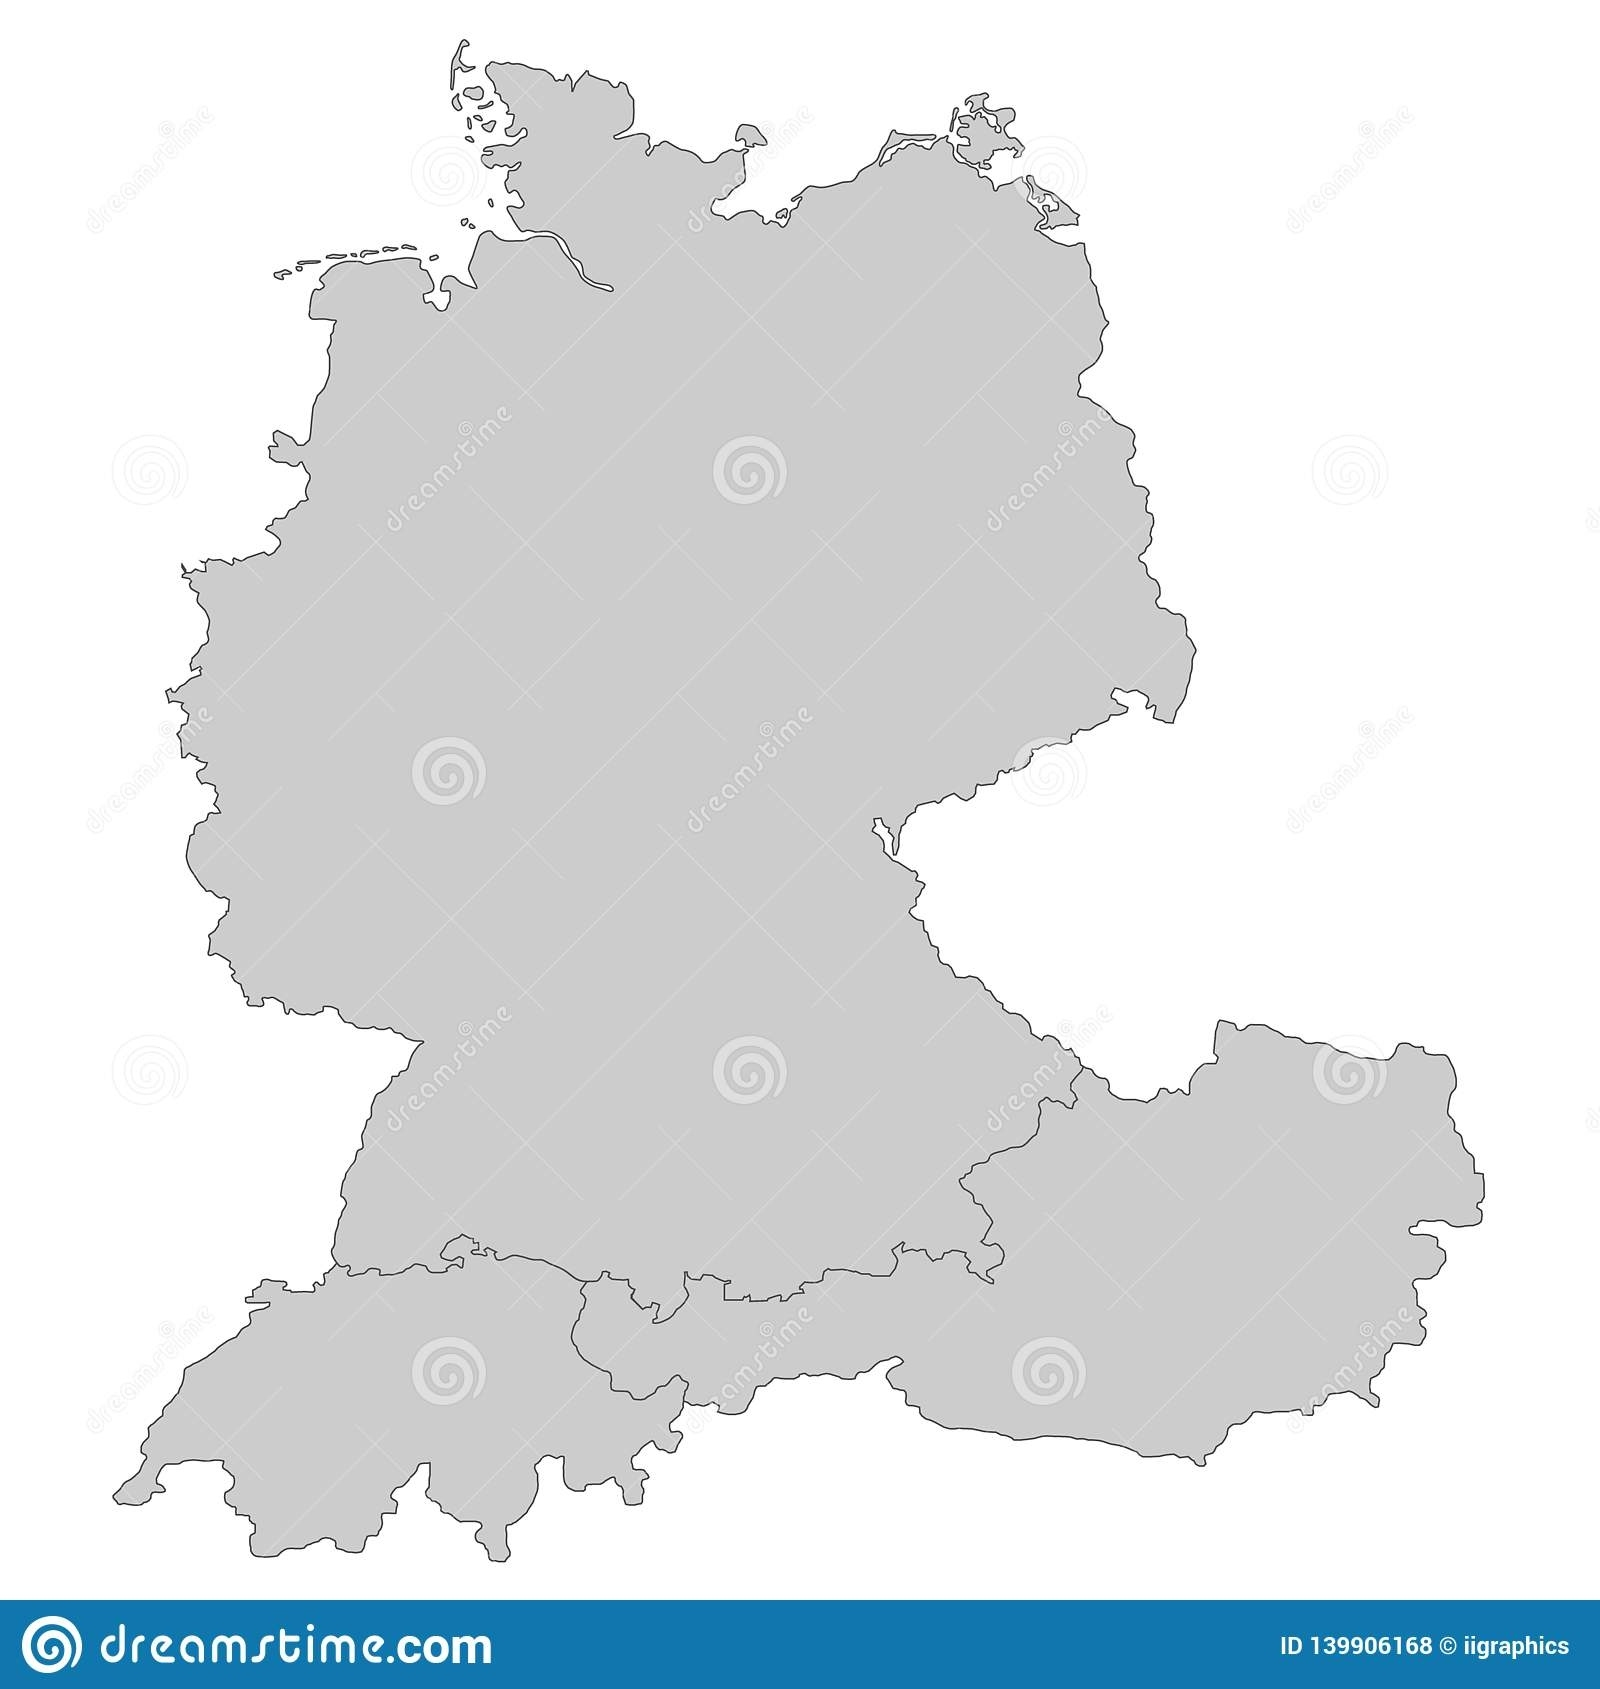 Map Of Germany, Austria And Switzerland Stock Illustration throughout Detailed Map Of Germany And Austria